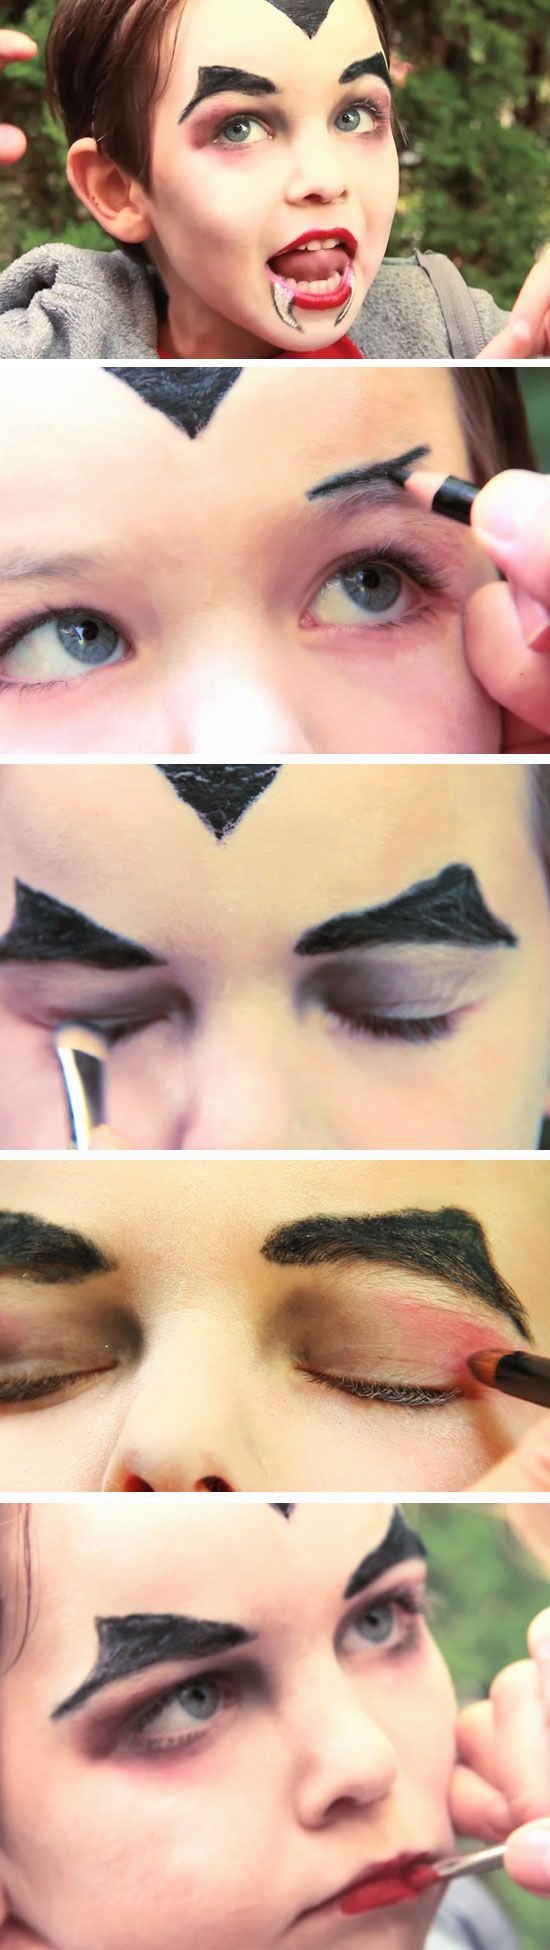 Dracula Vampire Makeup | DIY Face Painting Ideas for Kids | Easy Halloween Makeup Ideas for Kids